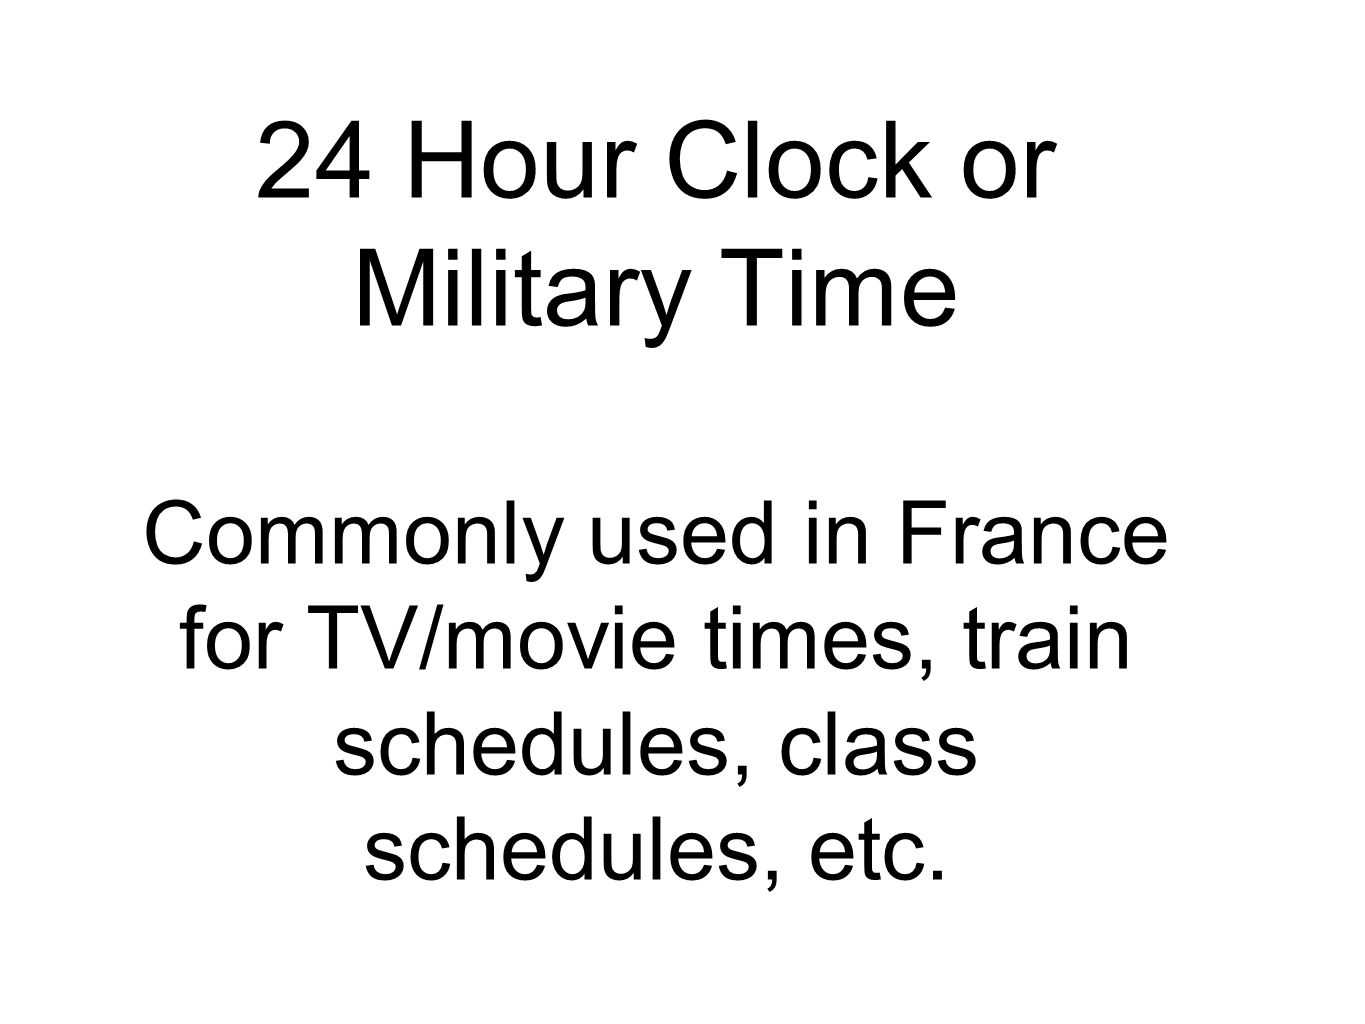 24 Hour Clock or Military Time